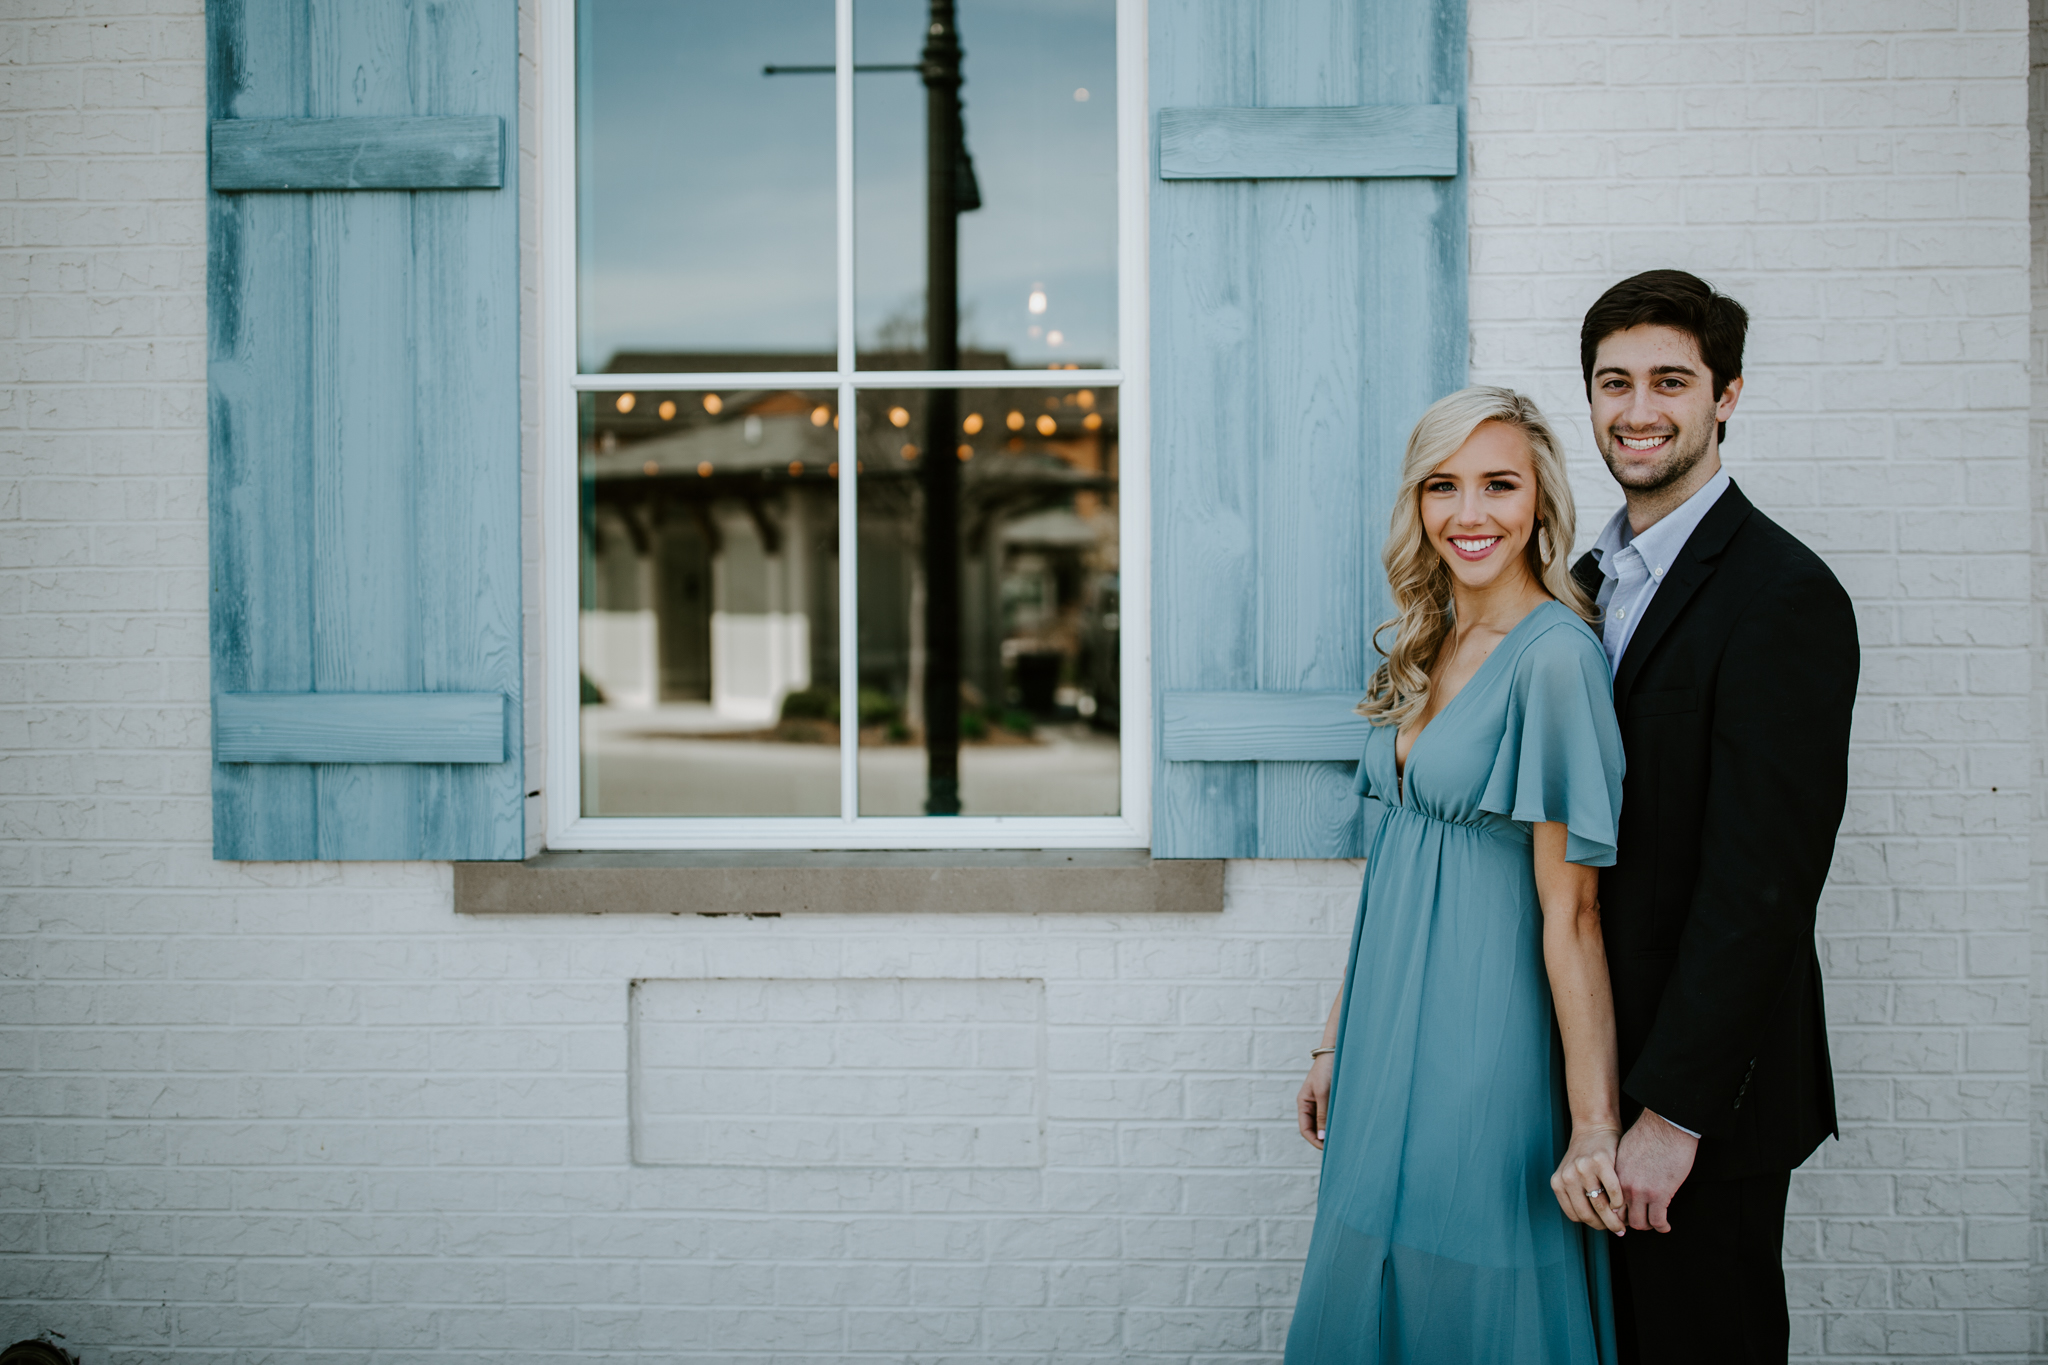 Ali-and-Jake-Chattanooga-Nashville-Tennessee-Wedding-Elopement-Photographer-75.jpg